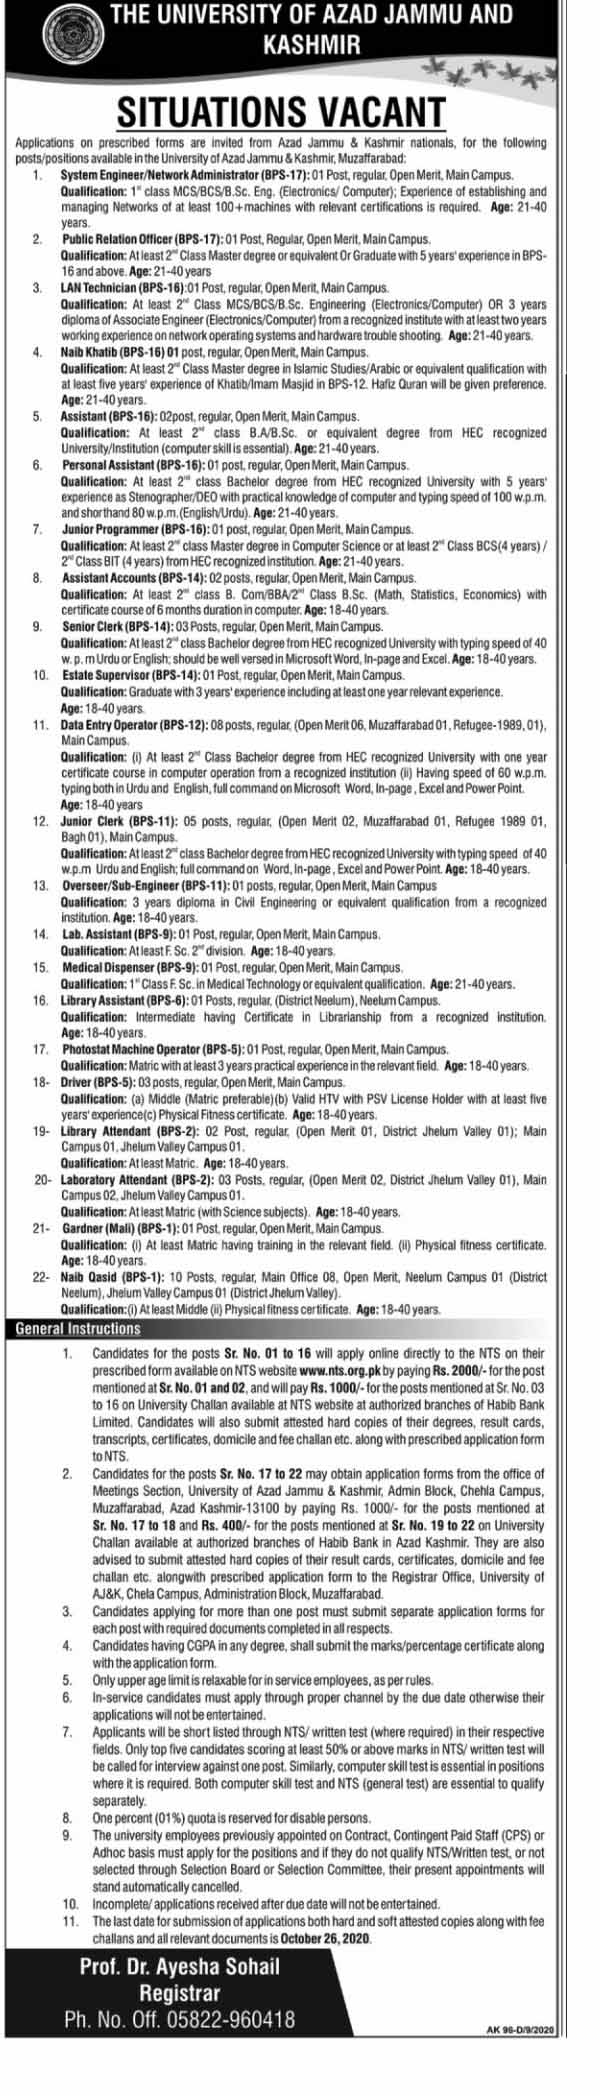 University of Azad Jammu and Kashmir Jobs September 2020